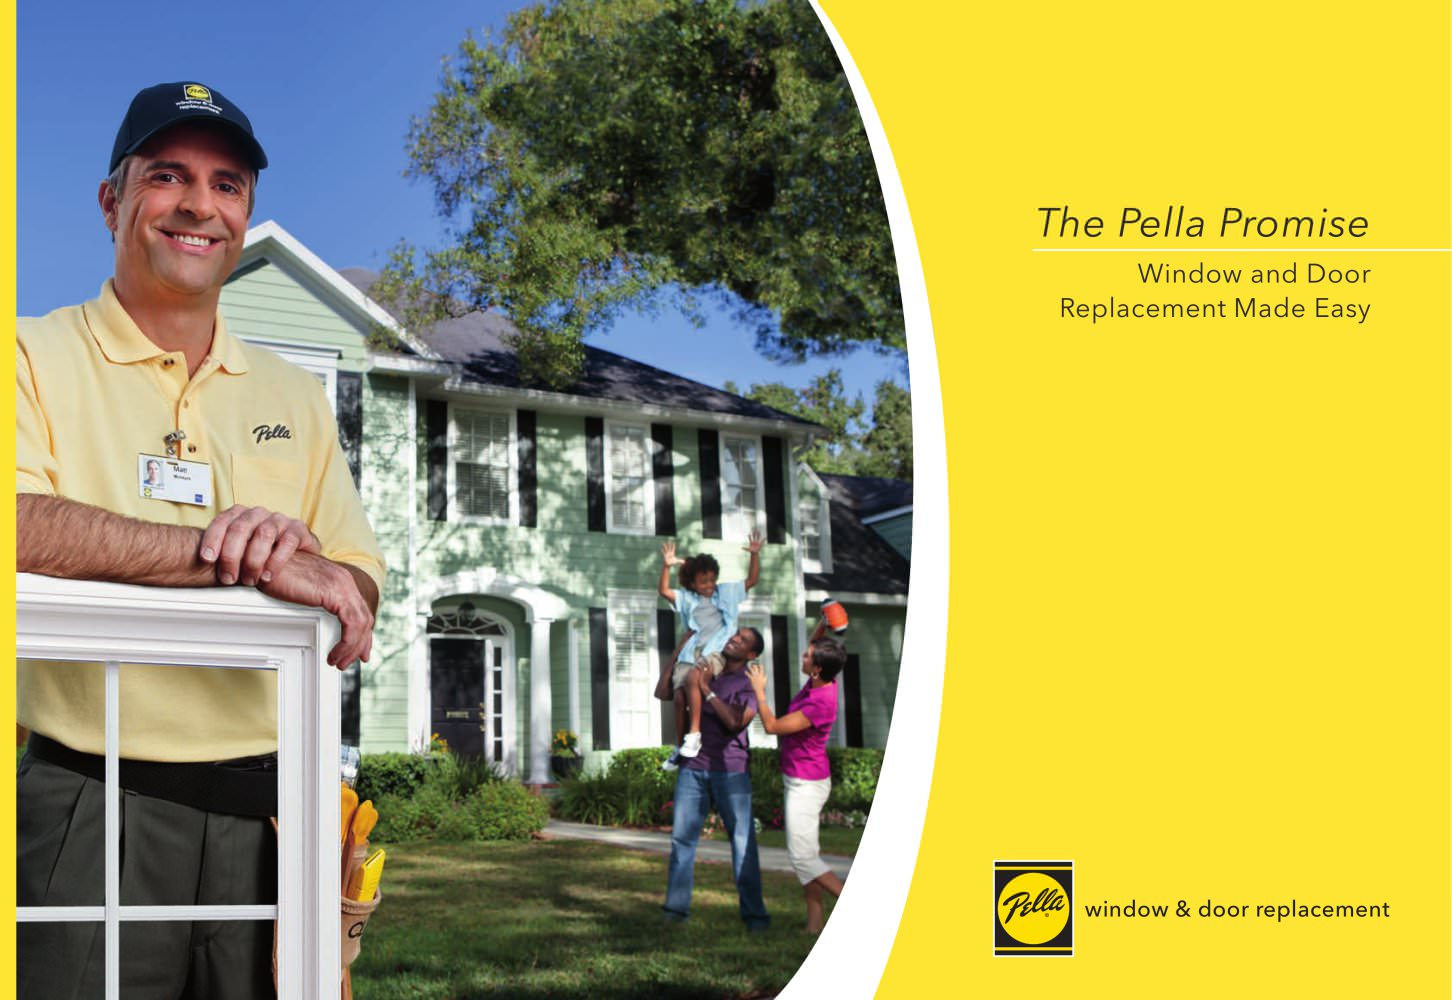 Pella Window And Door Replacement Guide   1 / 16 Pages